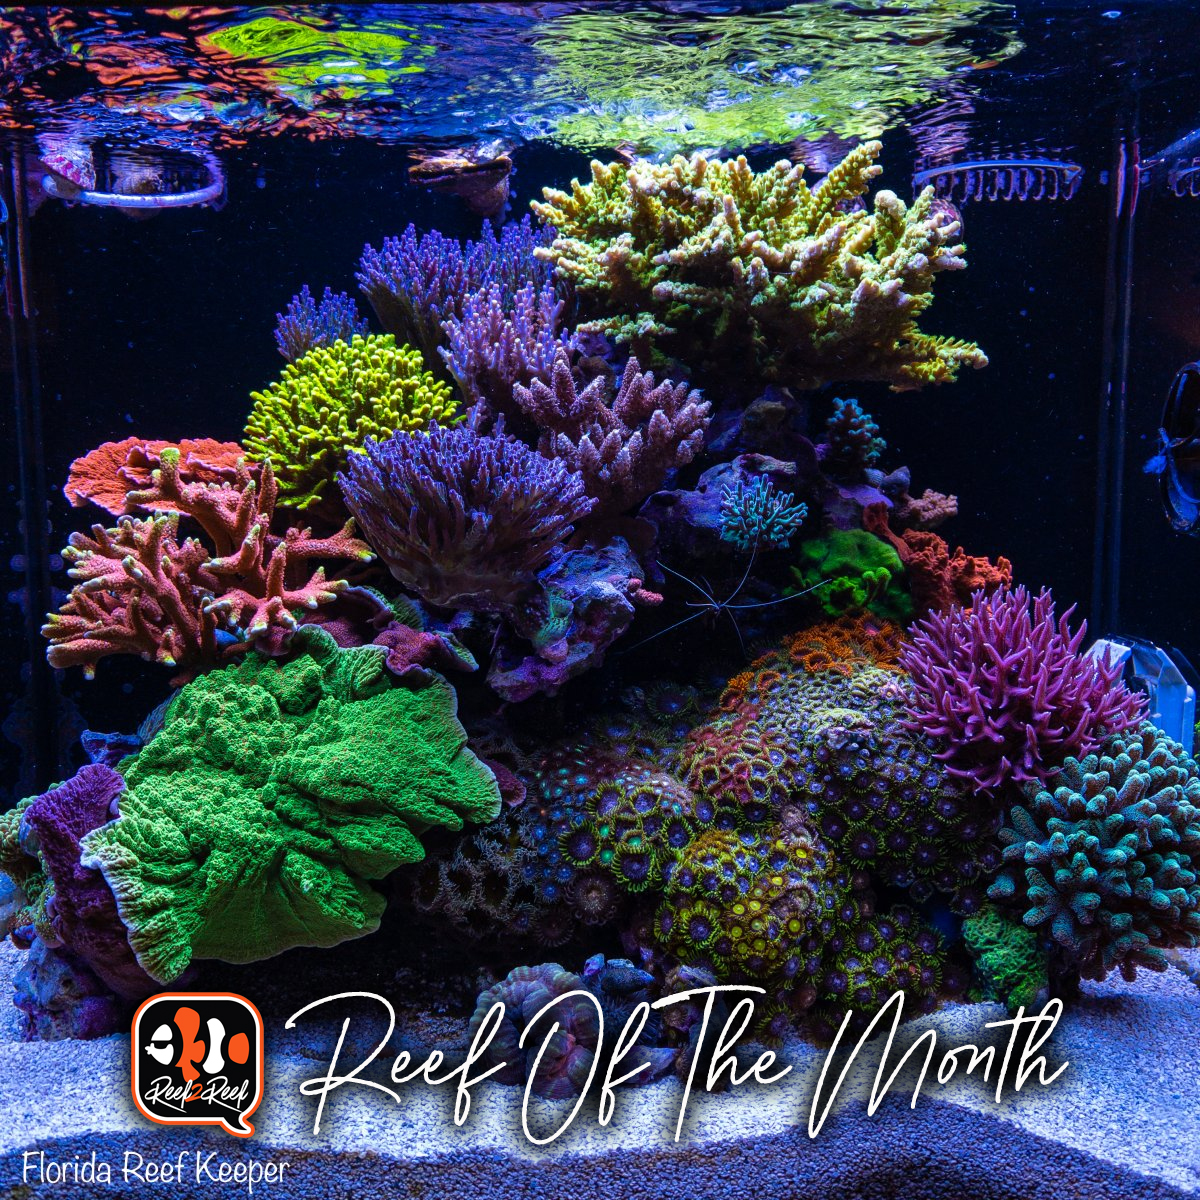 1 Reef of the month - Title.jpg